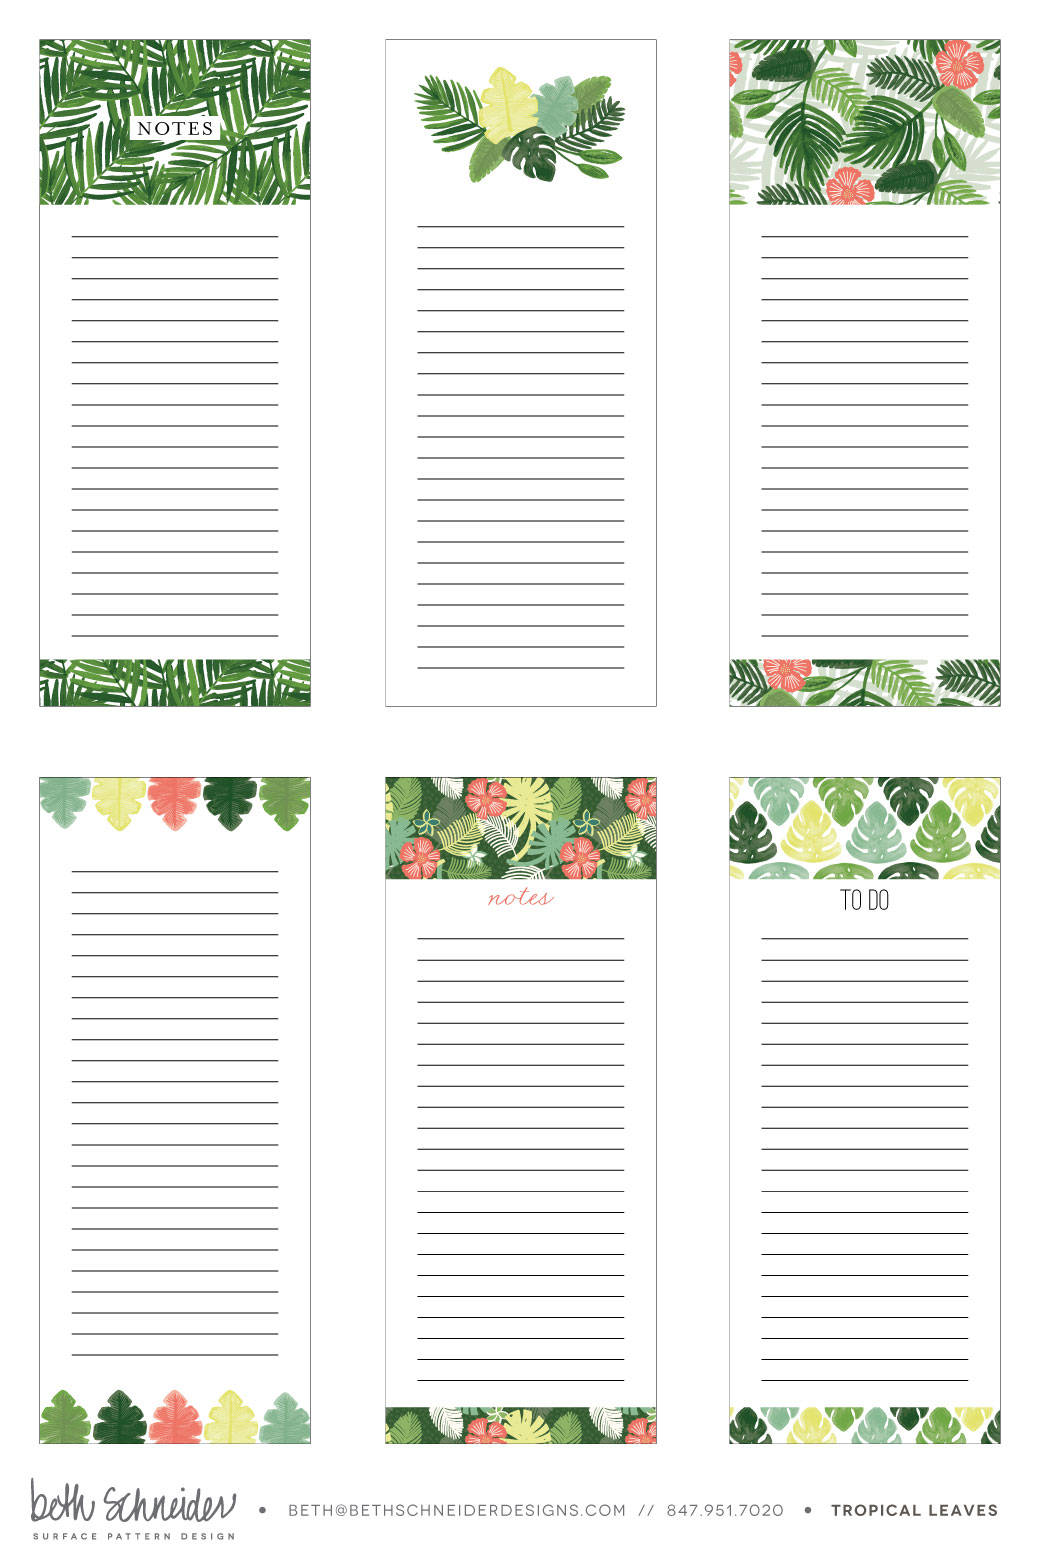 BethSchneider_TropicalLeaves_NOTEPADS.jpg